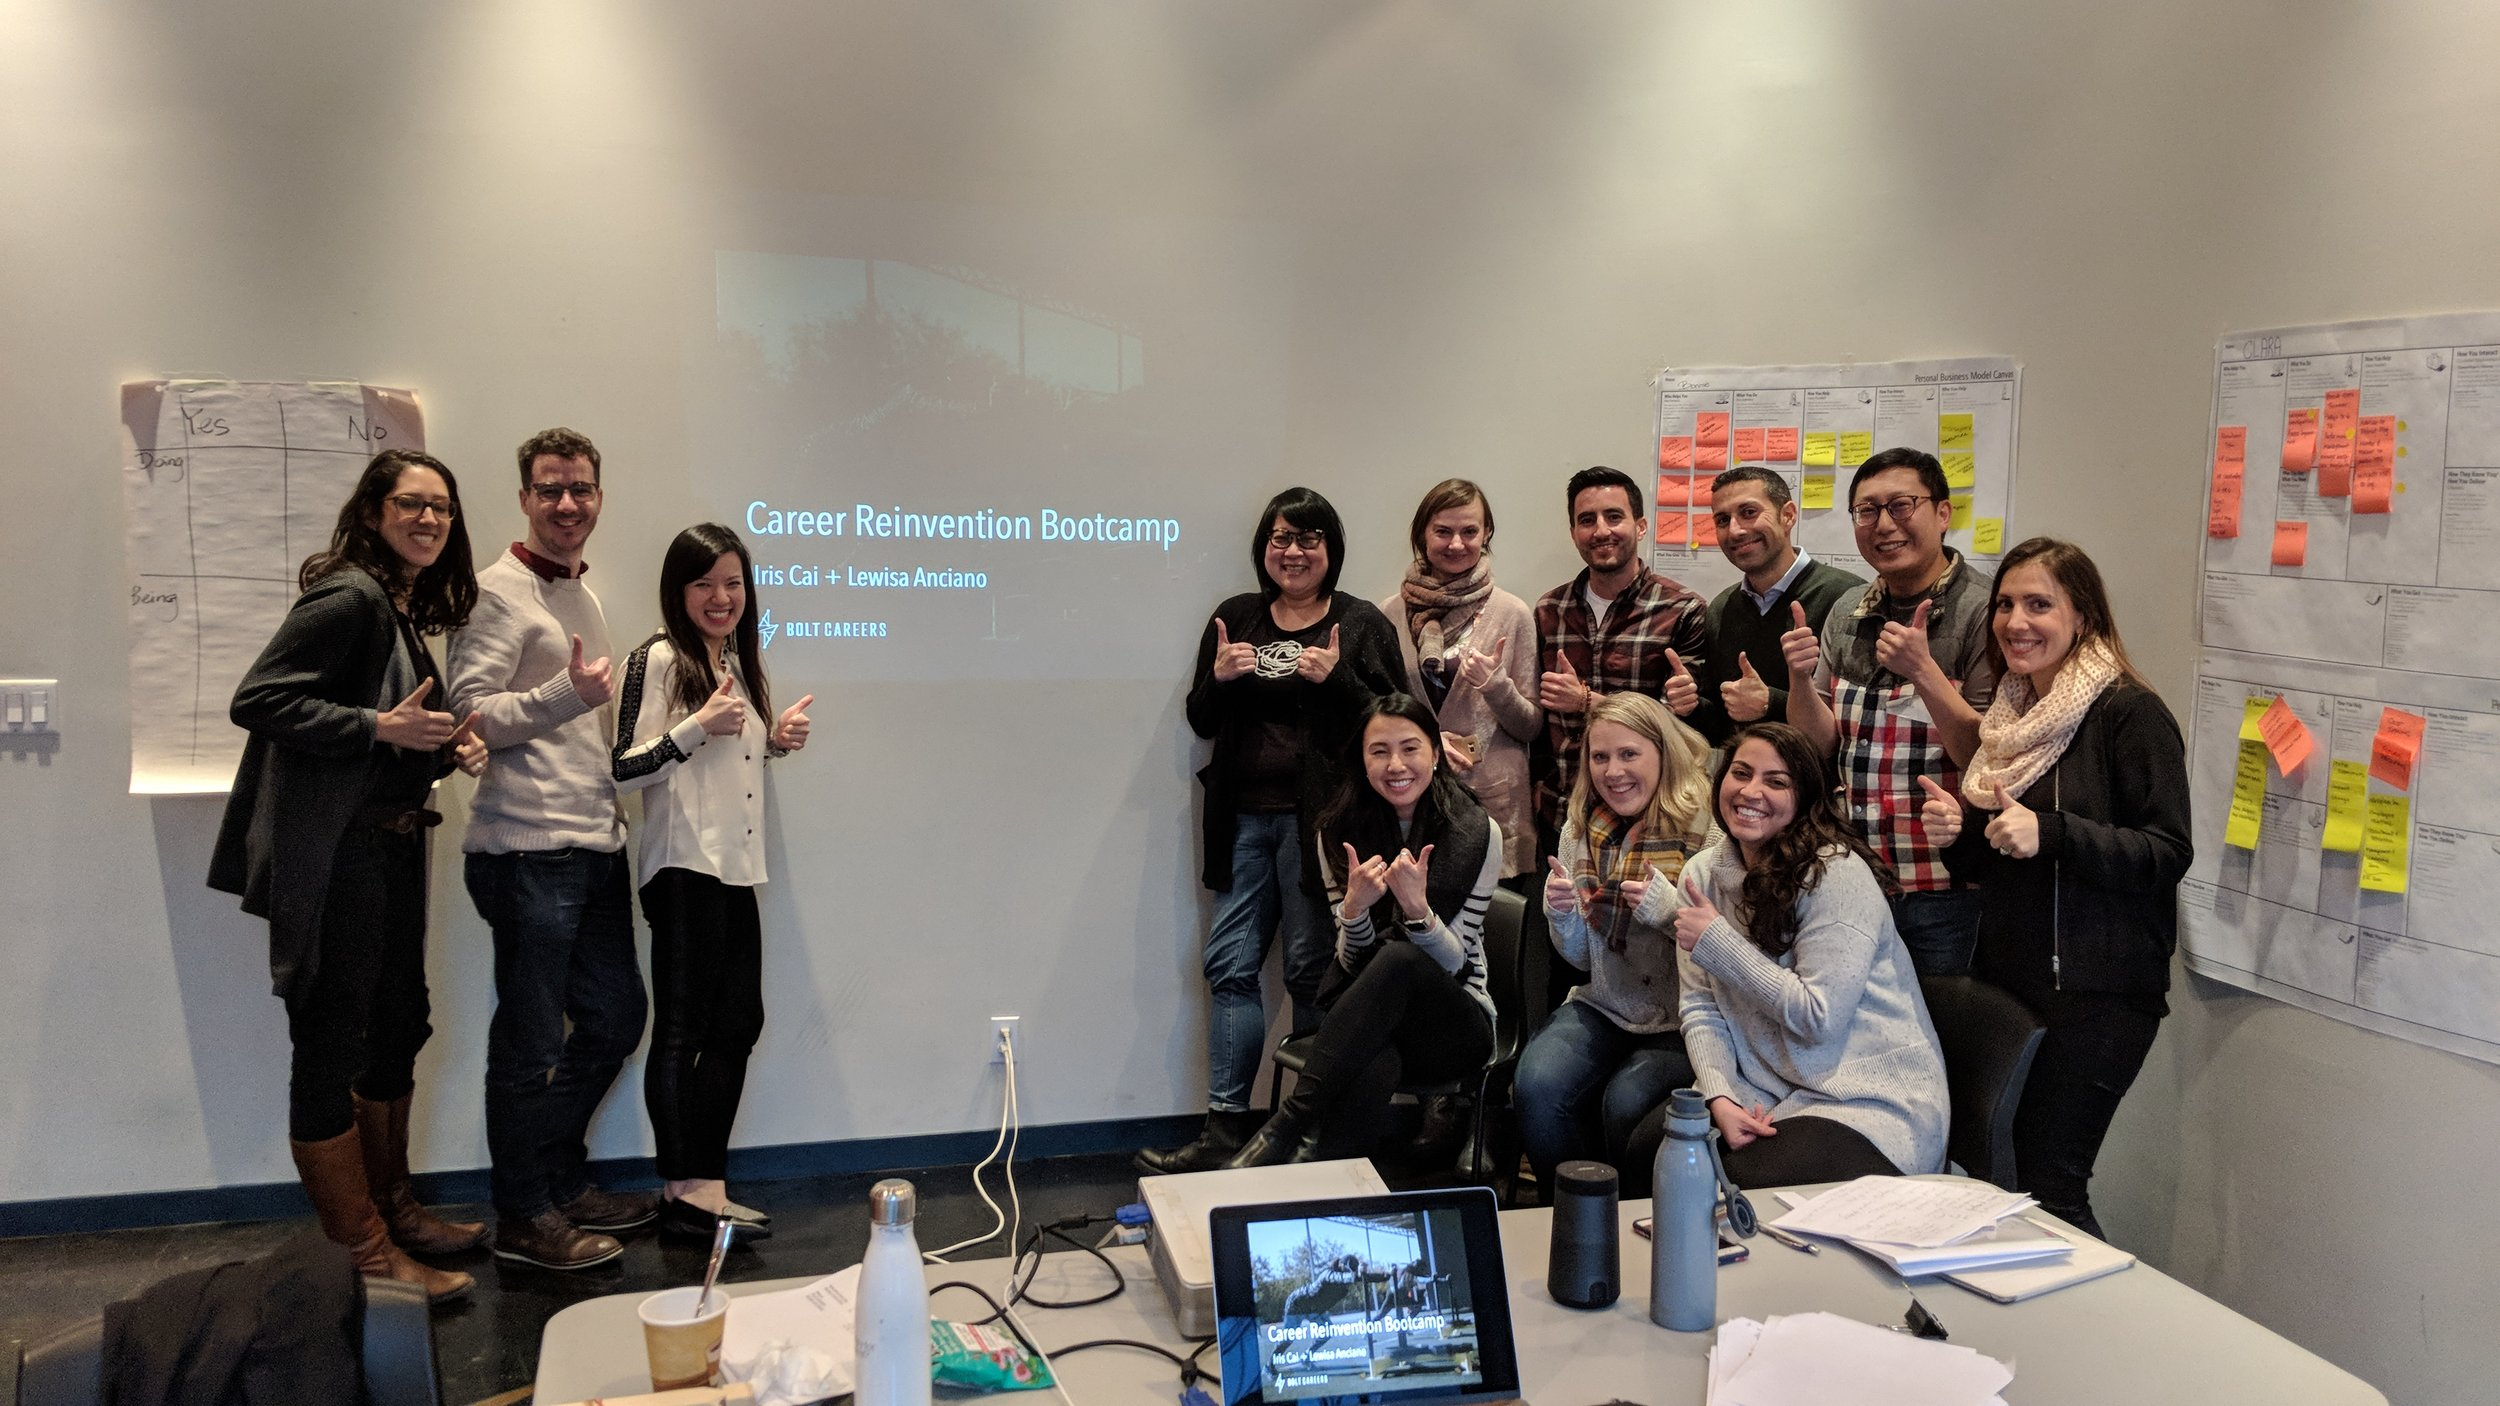 First class of Career Reinvention Bootcamp participants